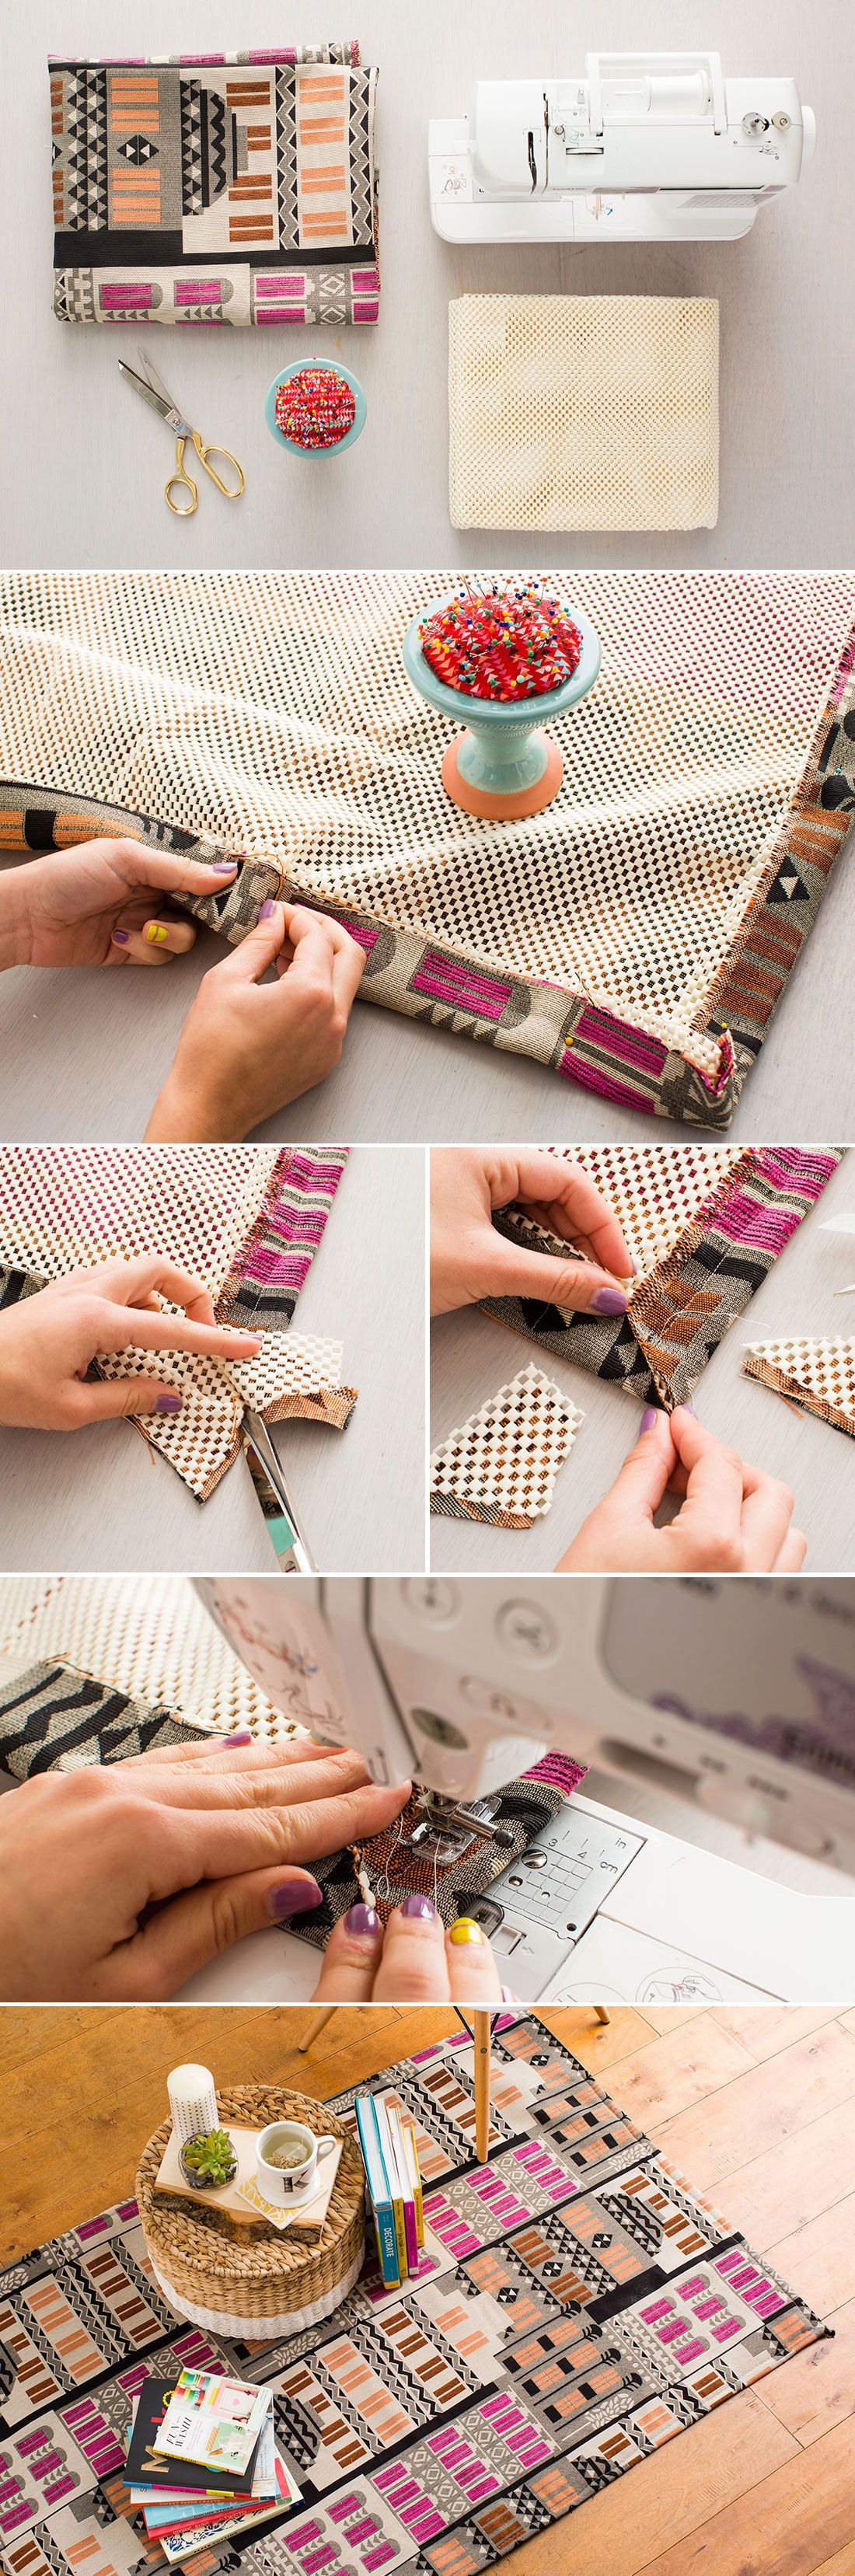 Make Over Your Living Room With This Cheap Easy Rug Hack Diy Fabric Diy Rug Inexpensive Rugs